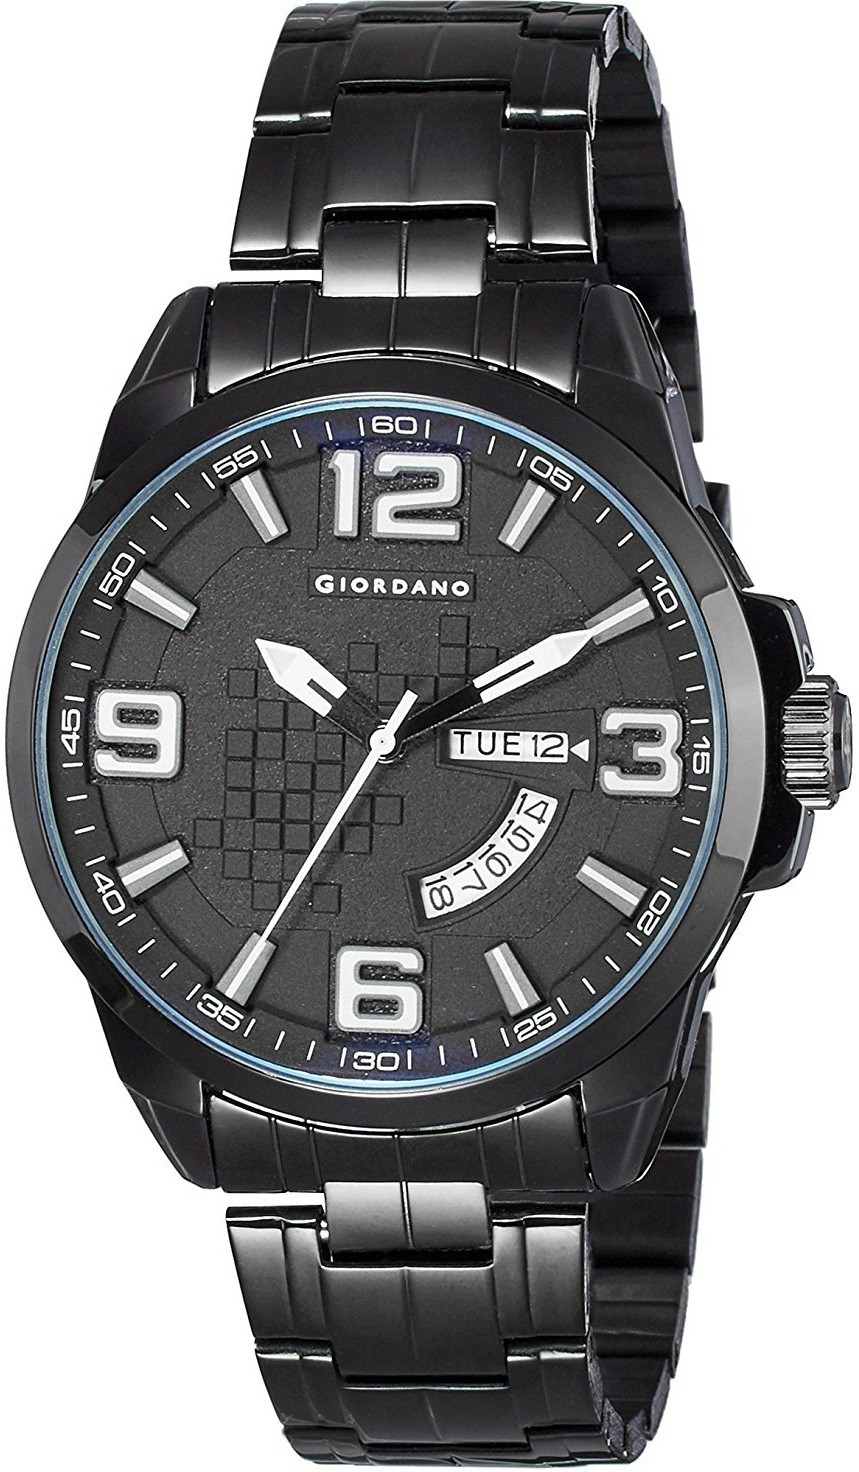 Deals - Delhi - Fossil & more <br> Watches<br> Category - watches<br> Business - Flipkart.com